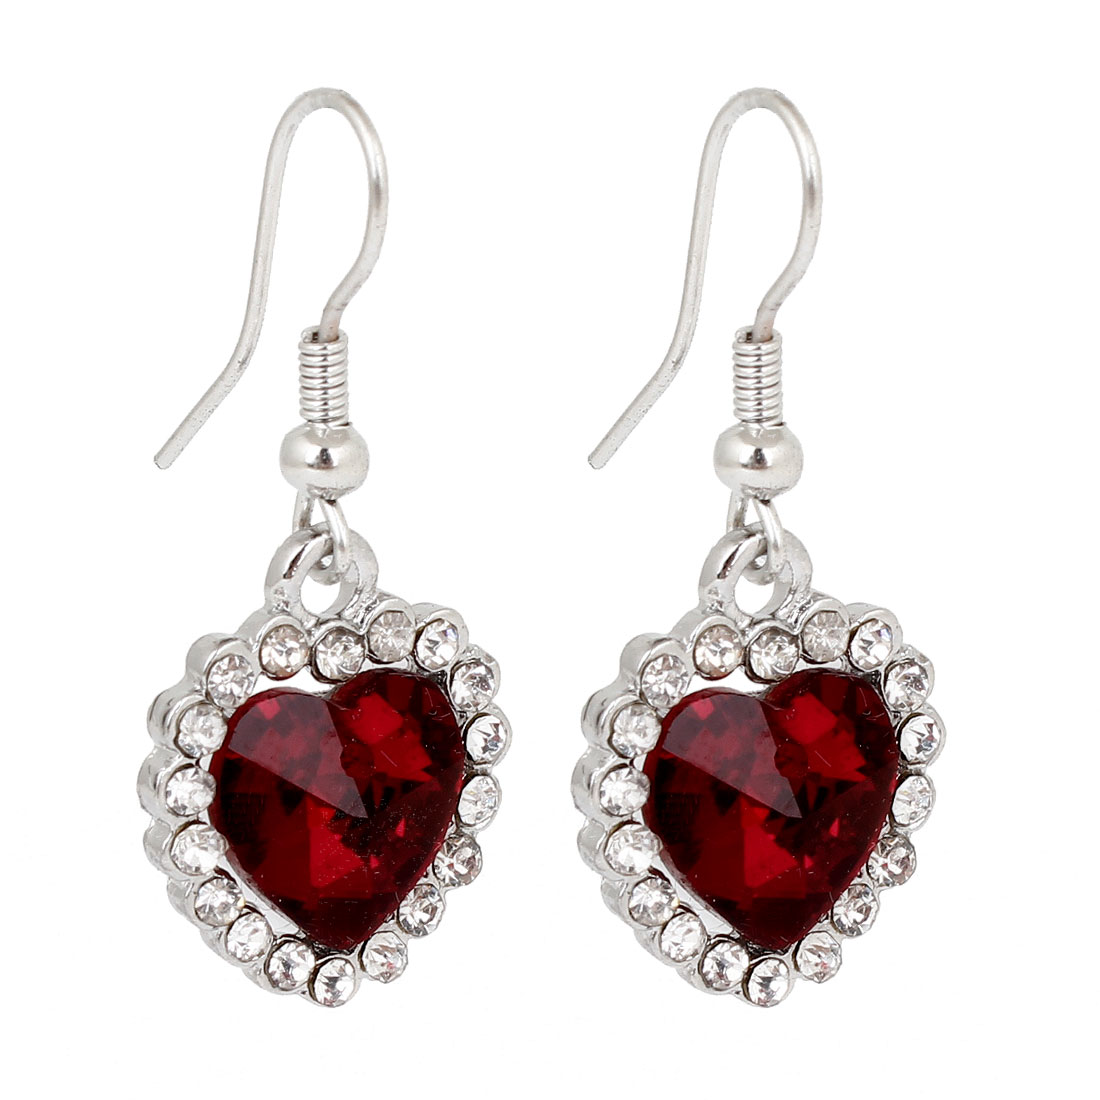 Women Sparkling Rhinestones Red Heart Decor Fish Hook Earrings Silver Tone Pair